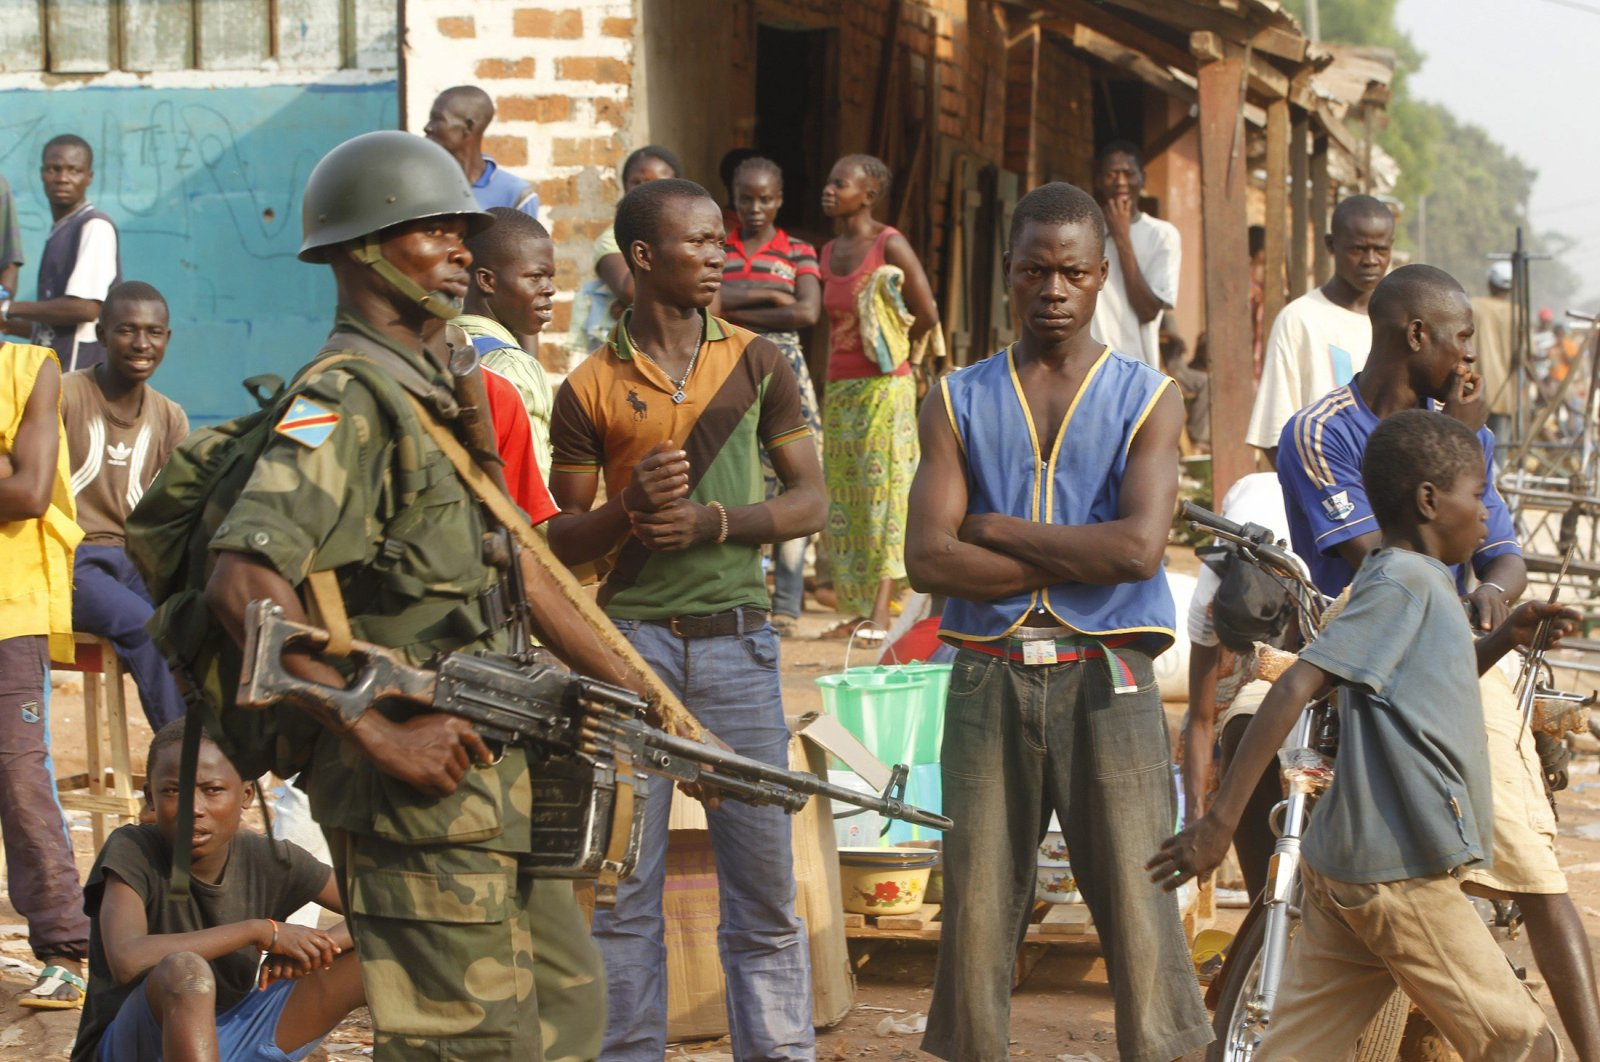 Democratic Republic of the Congo soldiers, part of an African peacekeeping force, patrol along a street in Bangui, Feb. 12, 2014. (Reuters Photo)